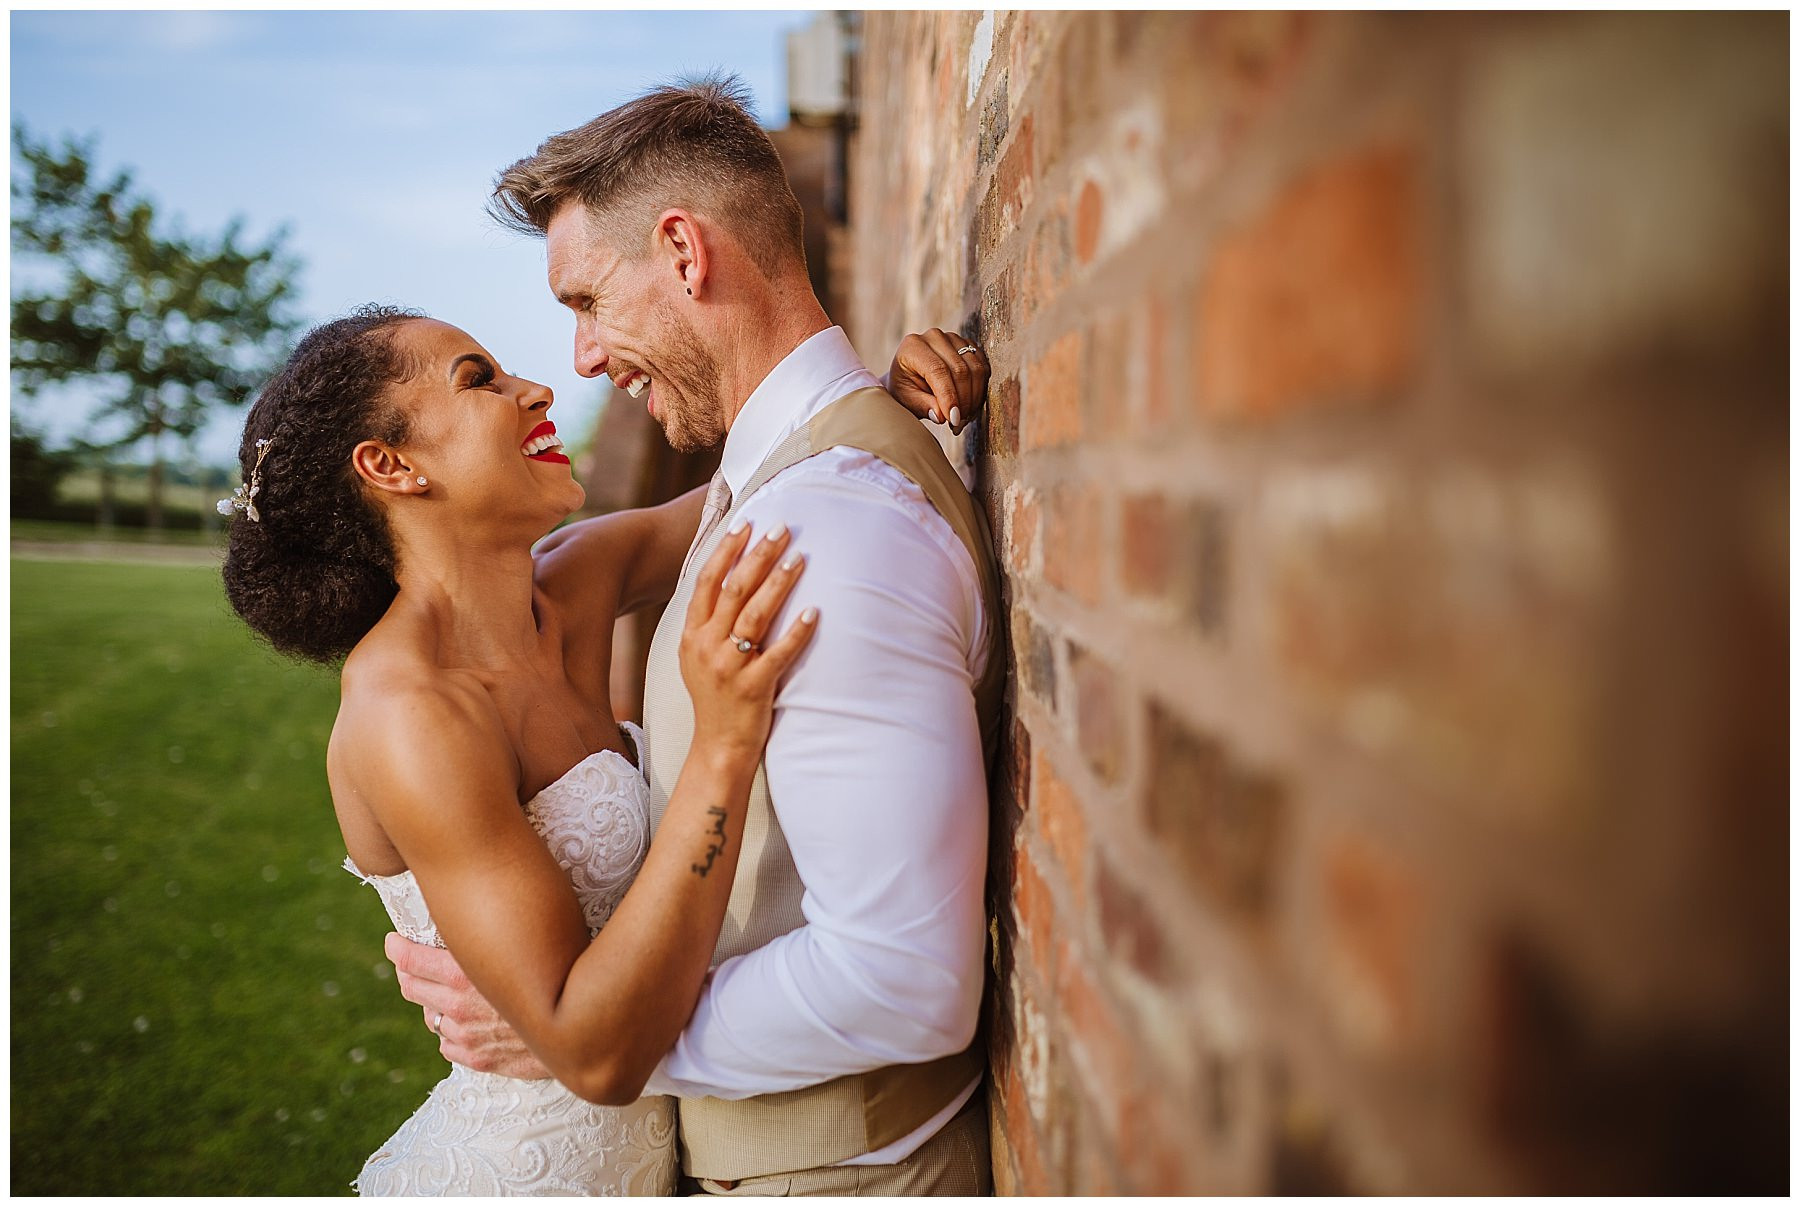 beautiful couples portraits at swancar farm wedding venue